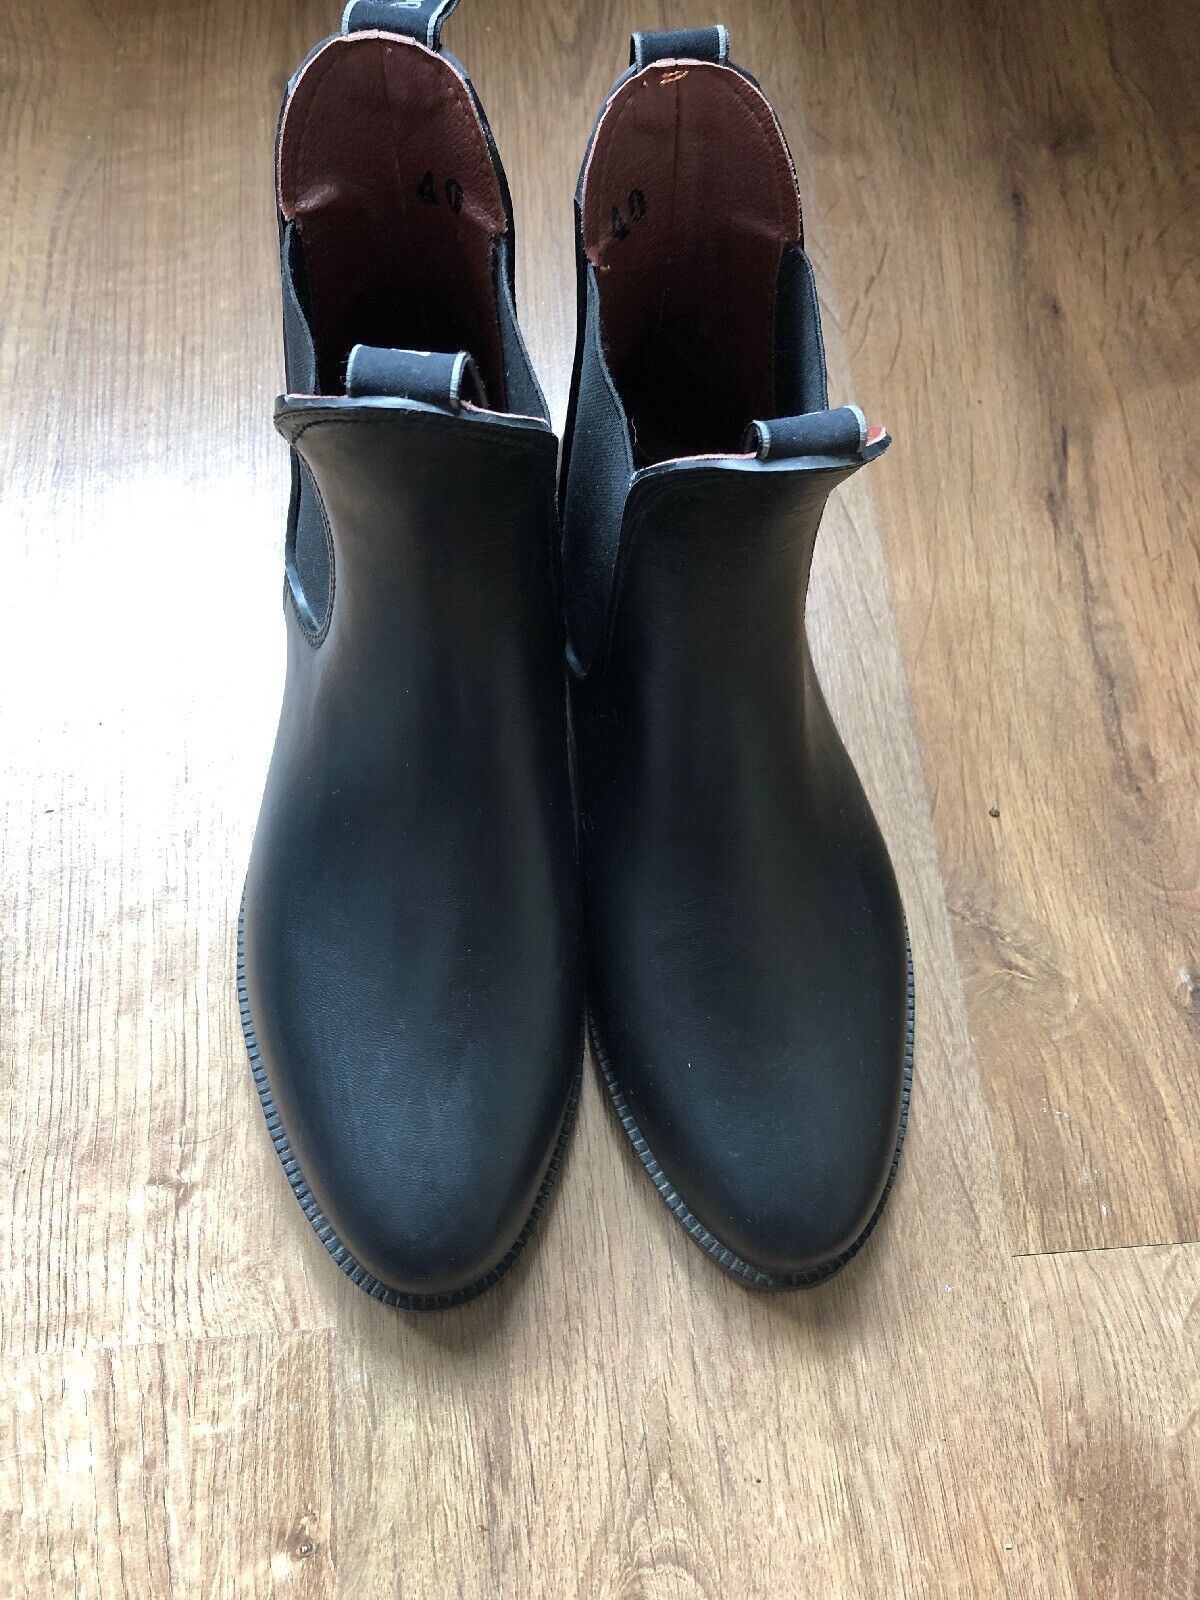 Dublin Womens Boots Size 40 Great Condition